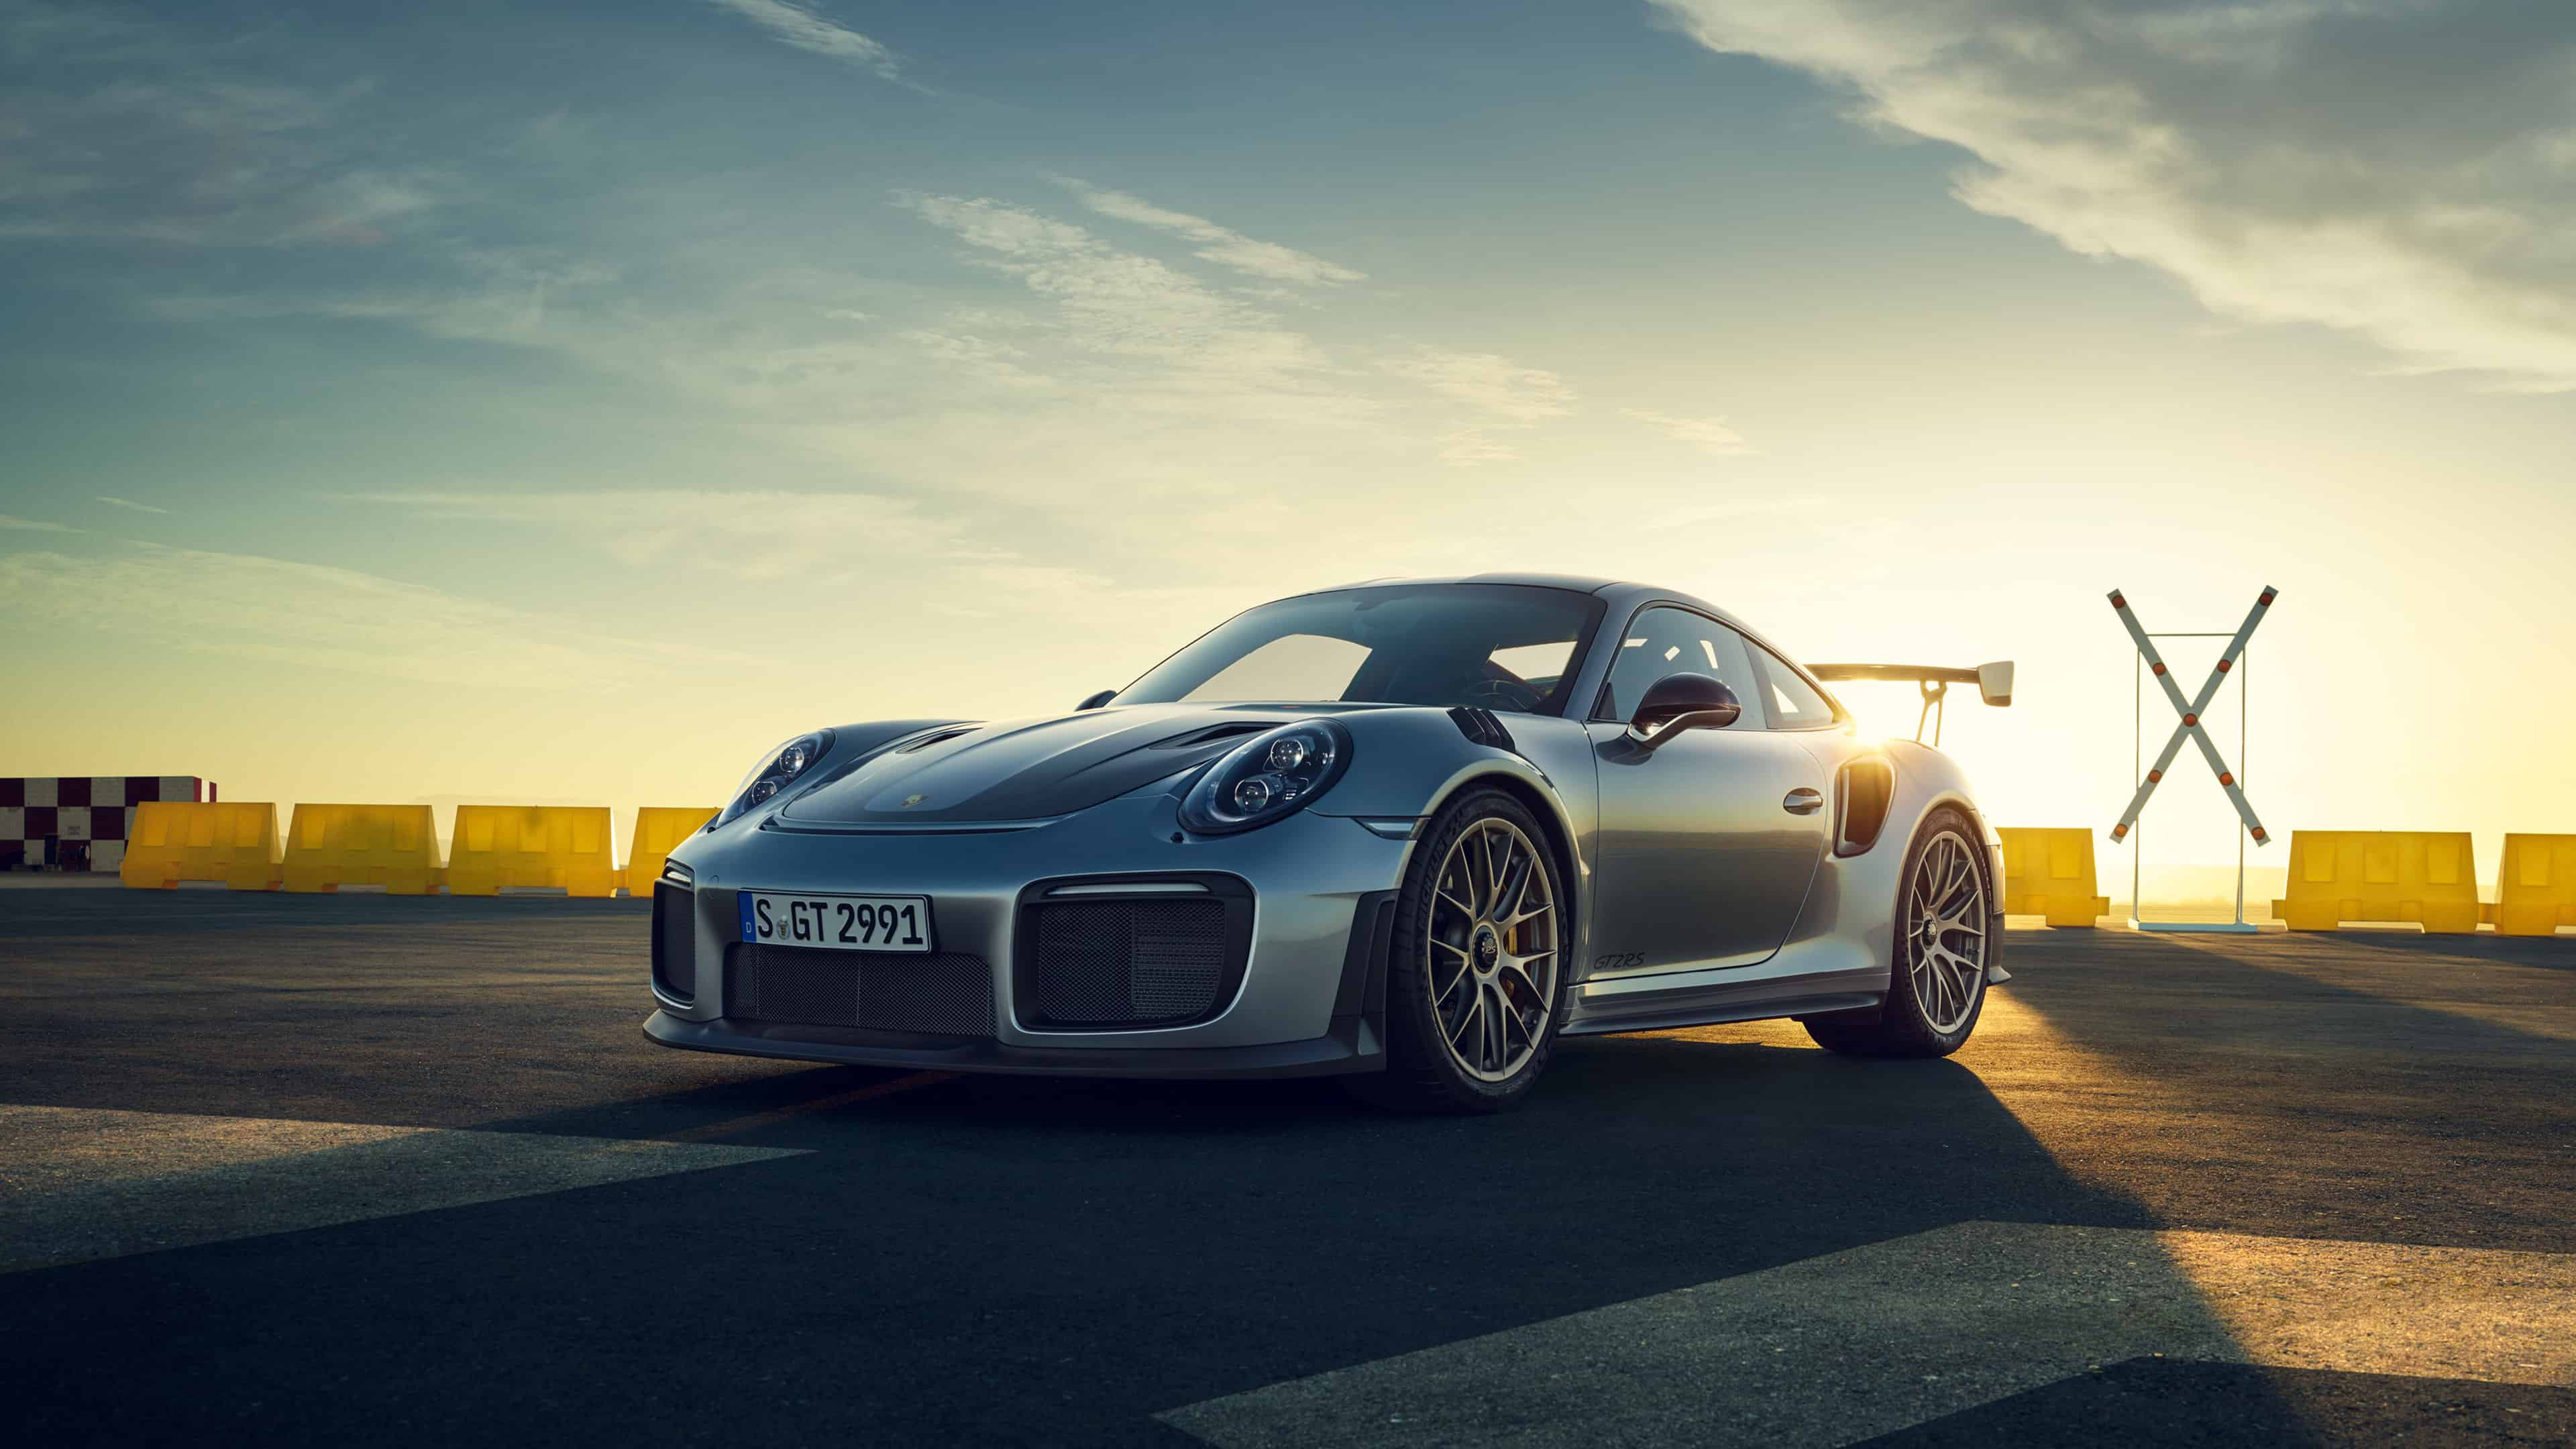 4k Porsche 911 Gt2 Wallpapers Top Free 4k Porsche 911 Gt2